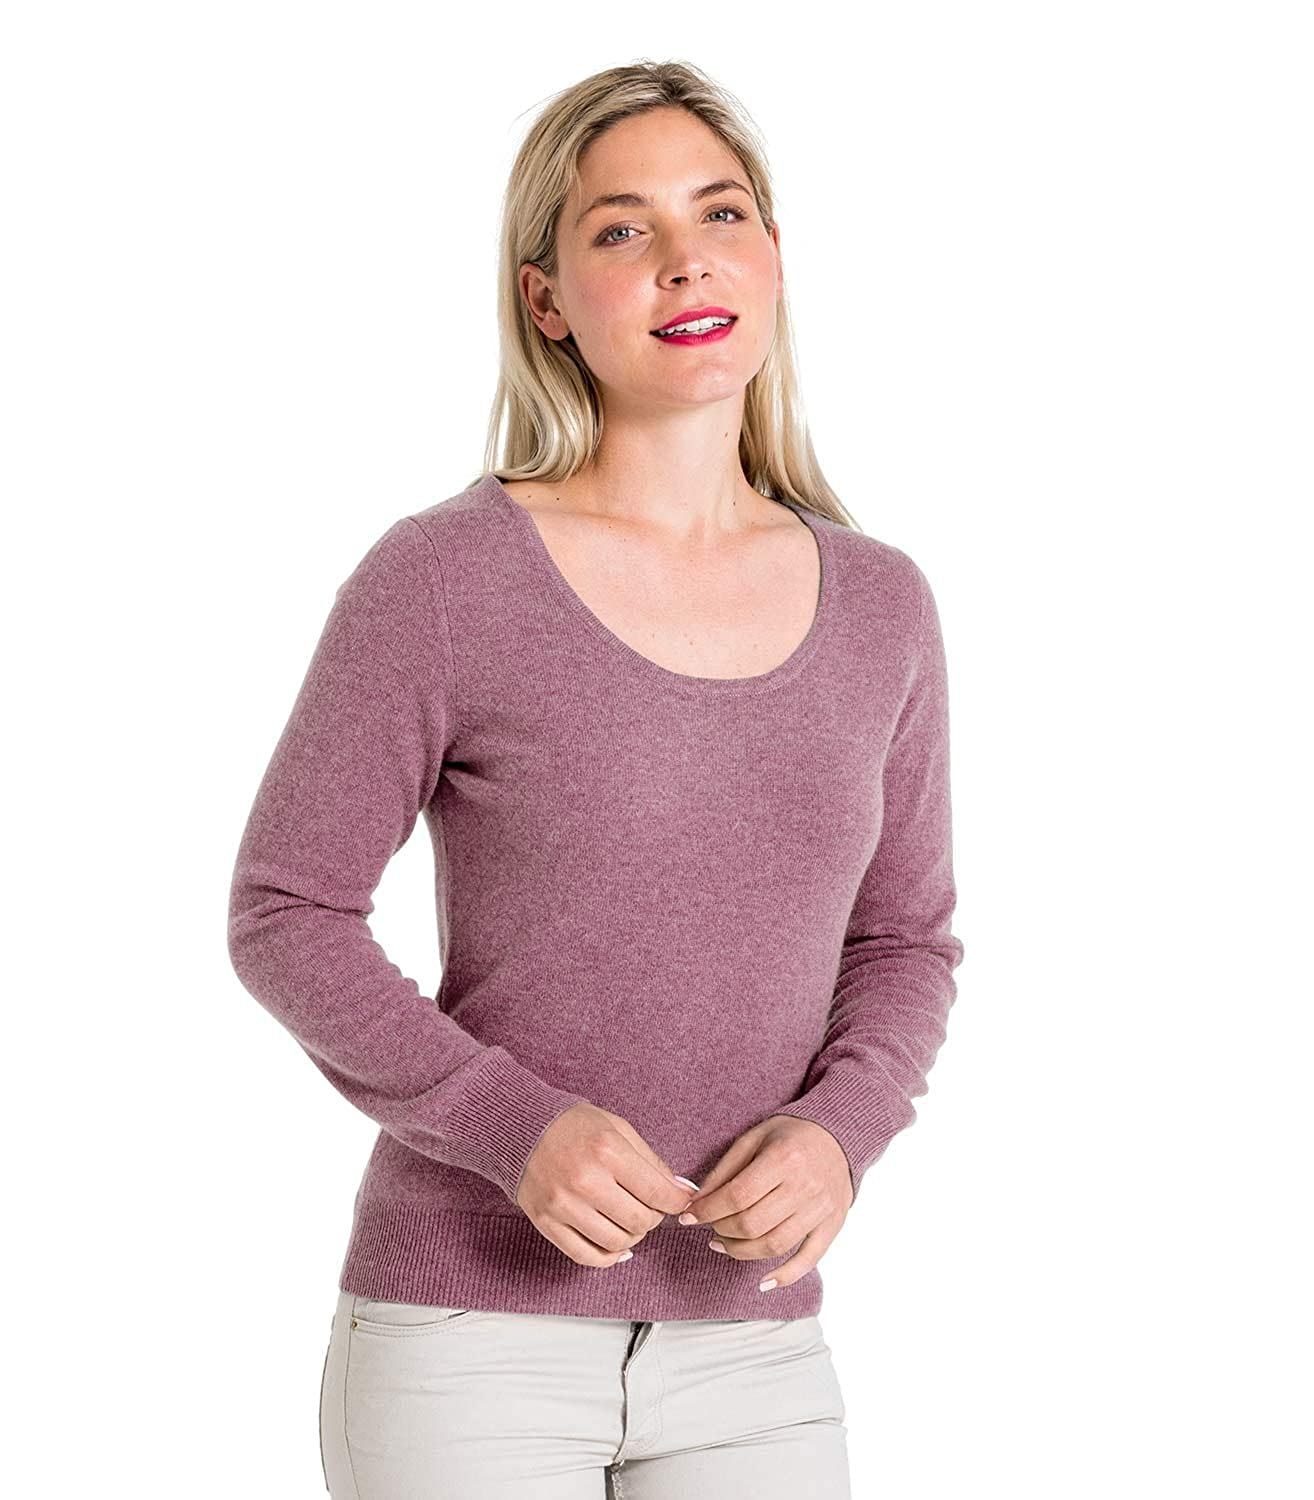 Woolovers Ladies Cashmere and Merino Scoop Neck Knitted Sweater